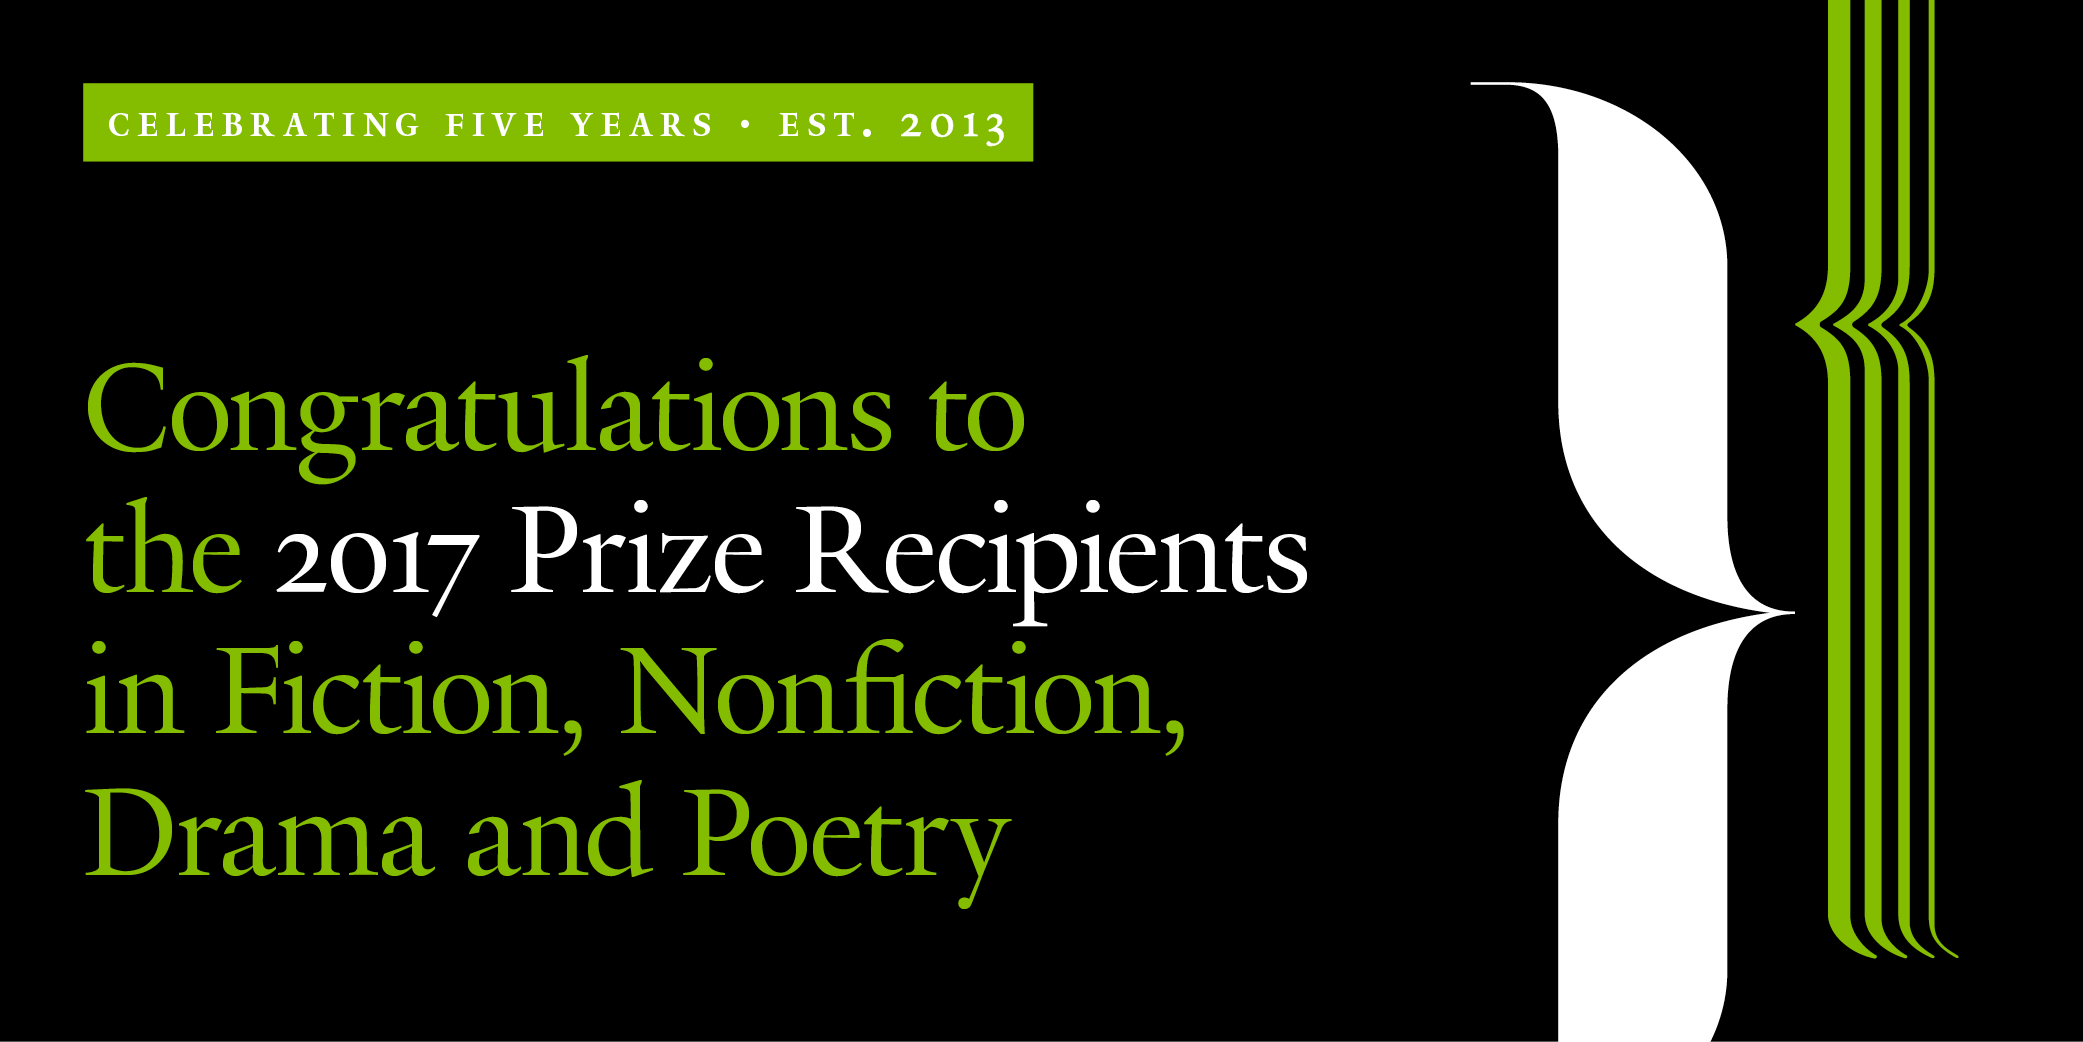 Windham-Campbell Prizes: The Phone Call of a Lifetime